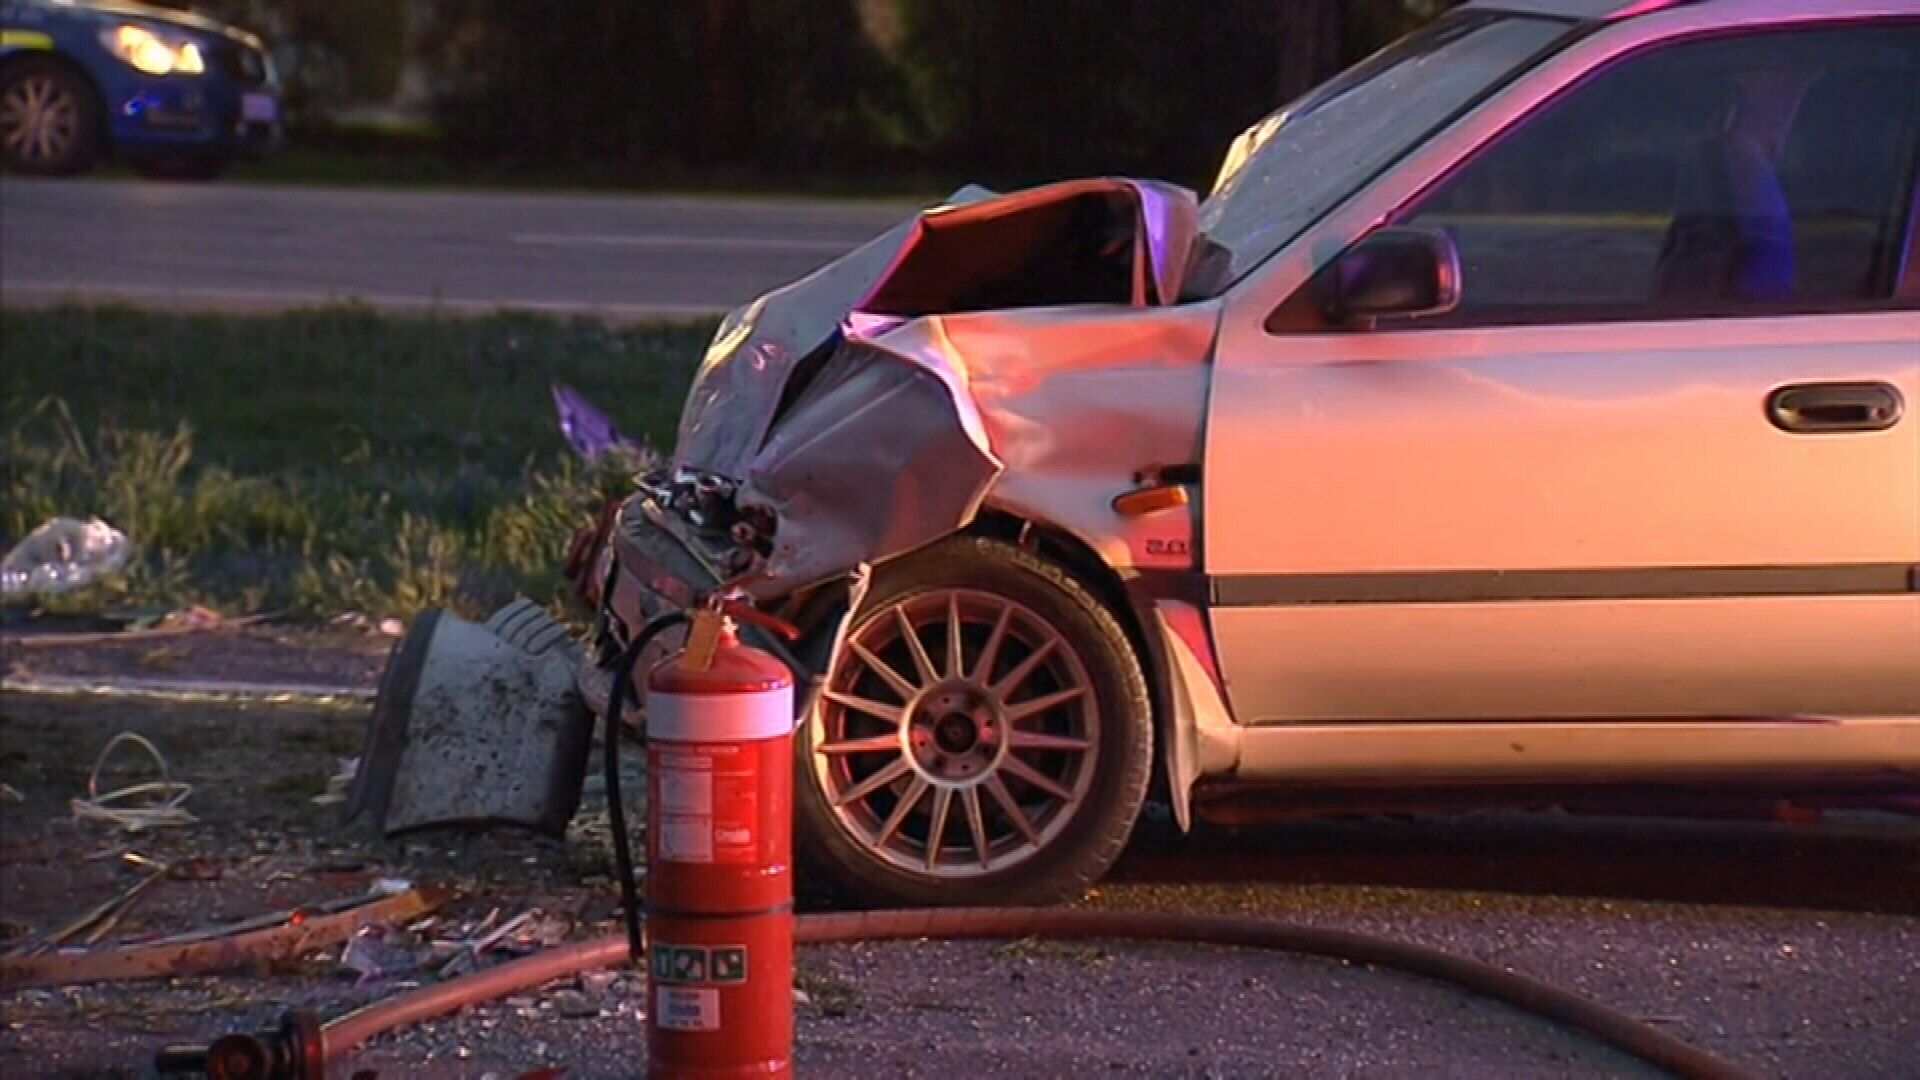 An 18-year-old has died and his 16-year-old passenger is fighting for life after a crash in Adelaide. (9NEWS)